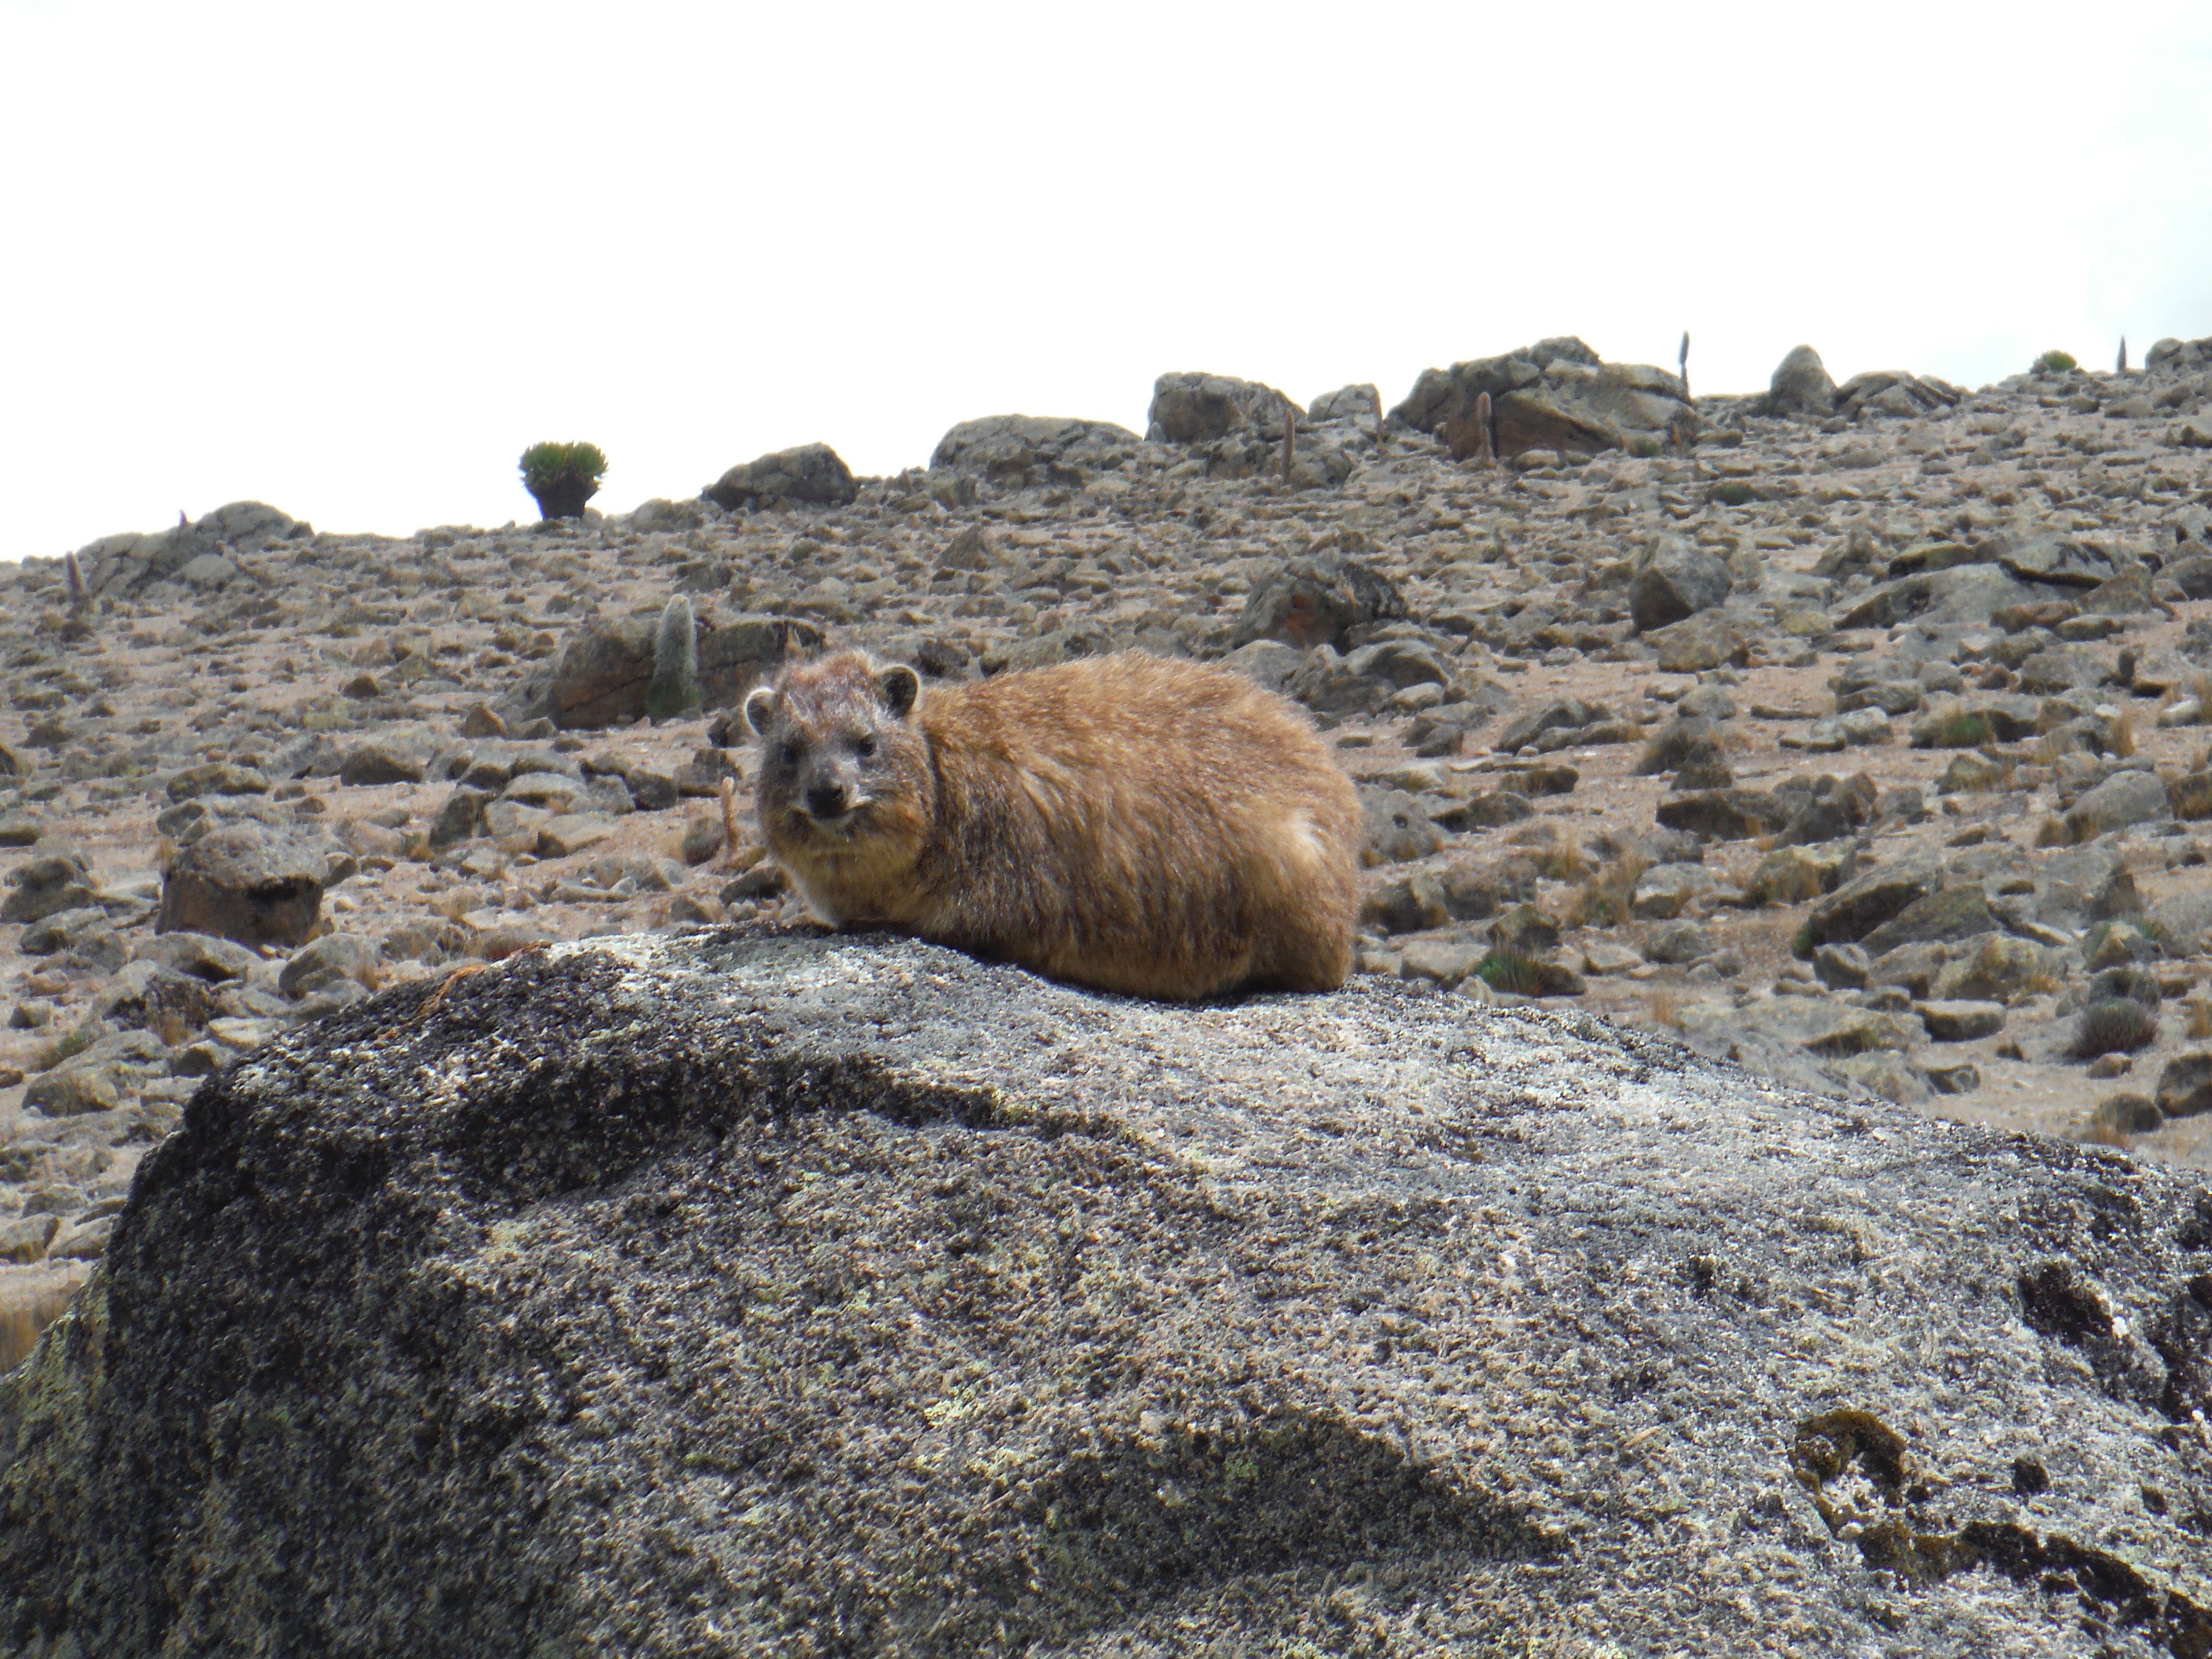 Rock Hyrax: An Unexpected Relative of Elephants